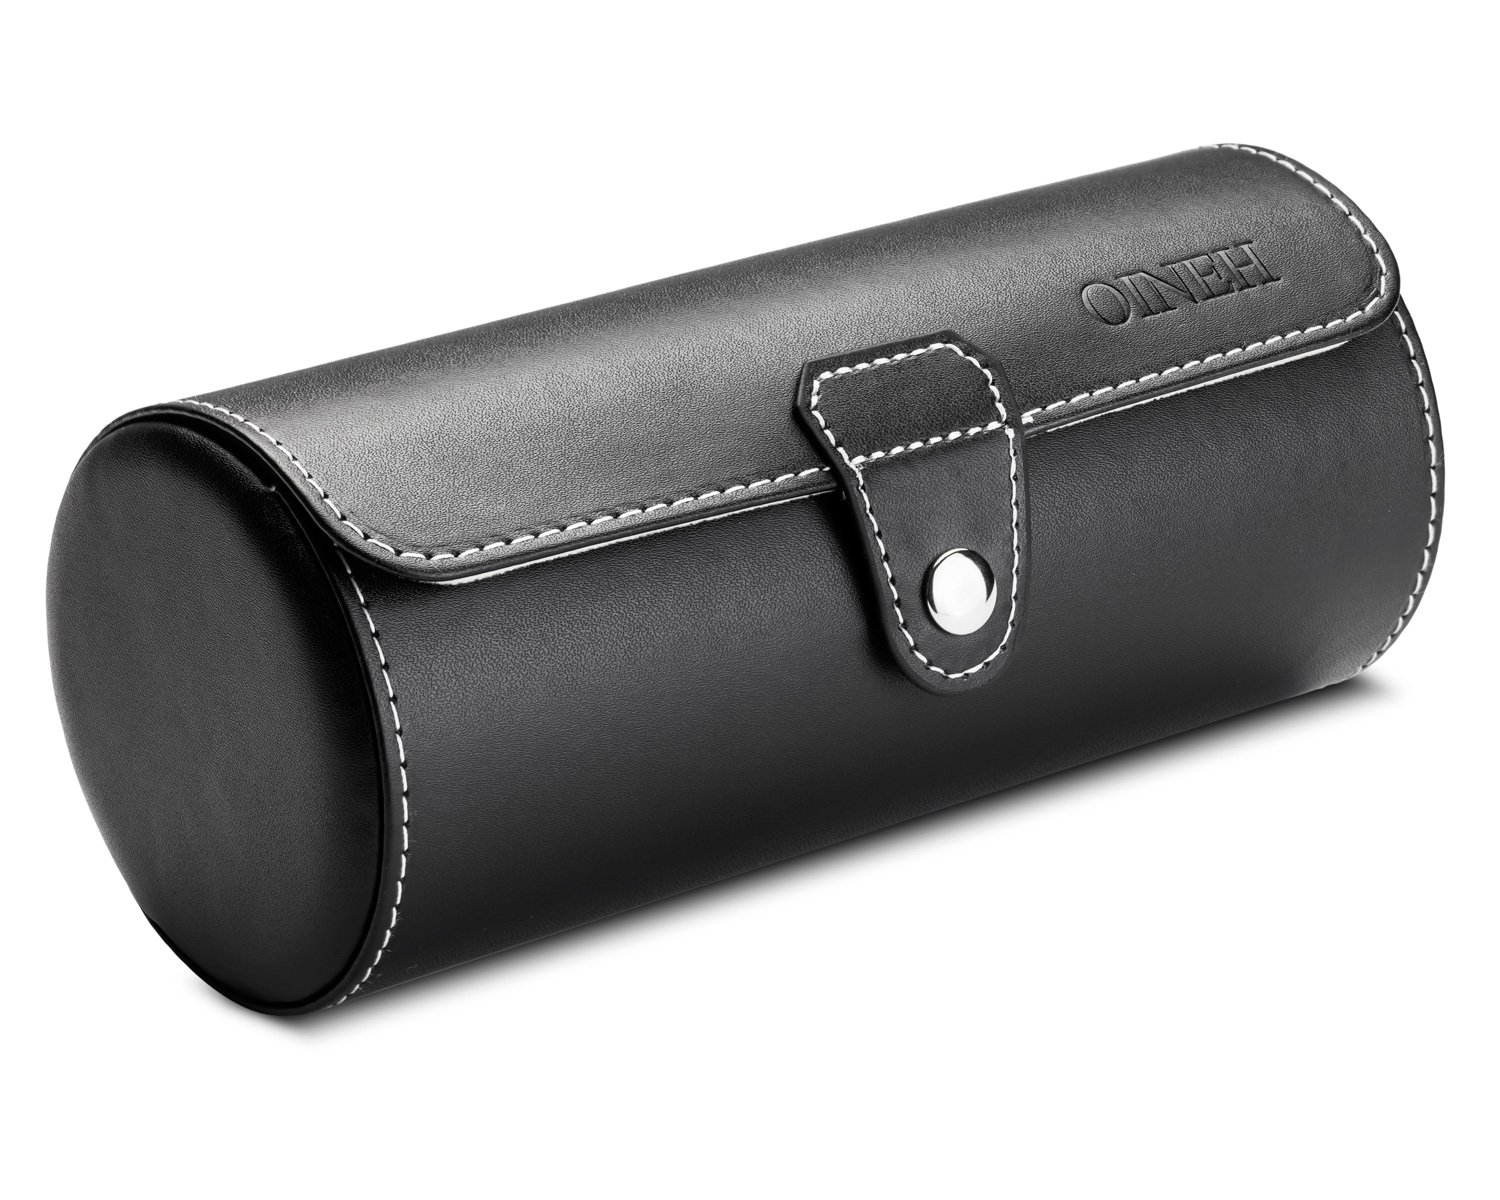 Leatherette Roll Traveler's Watch Storage Organizer for 3 Watch and/or Bracelets (Black) by Oineh (Image #2)